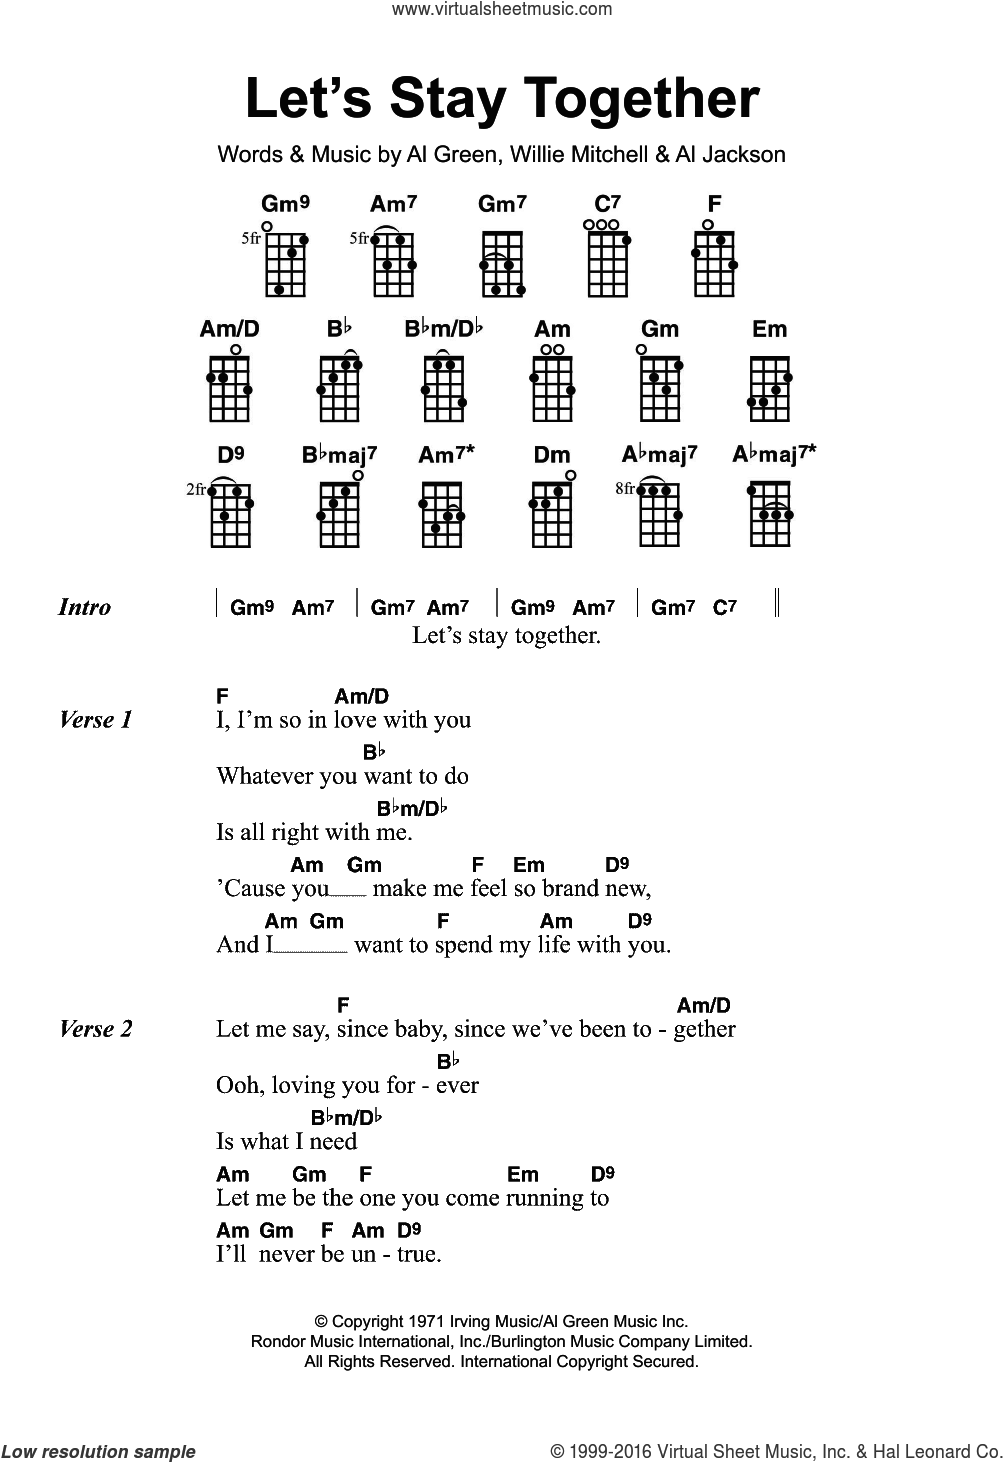 Let's Stay Together sheet music for ukulele by Al Green, Al Jackson and Willie Mitchell, intermediate skill level